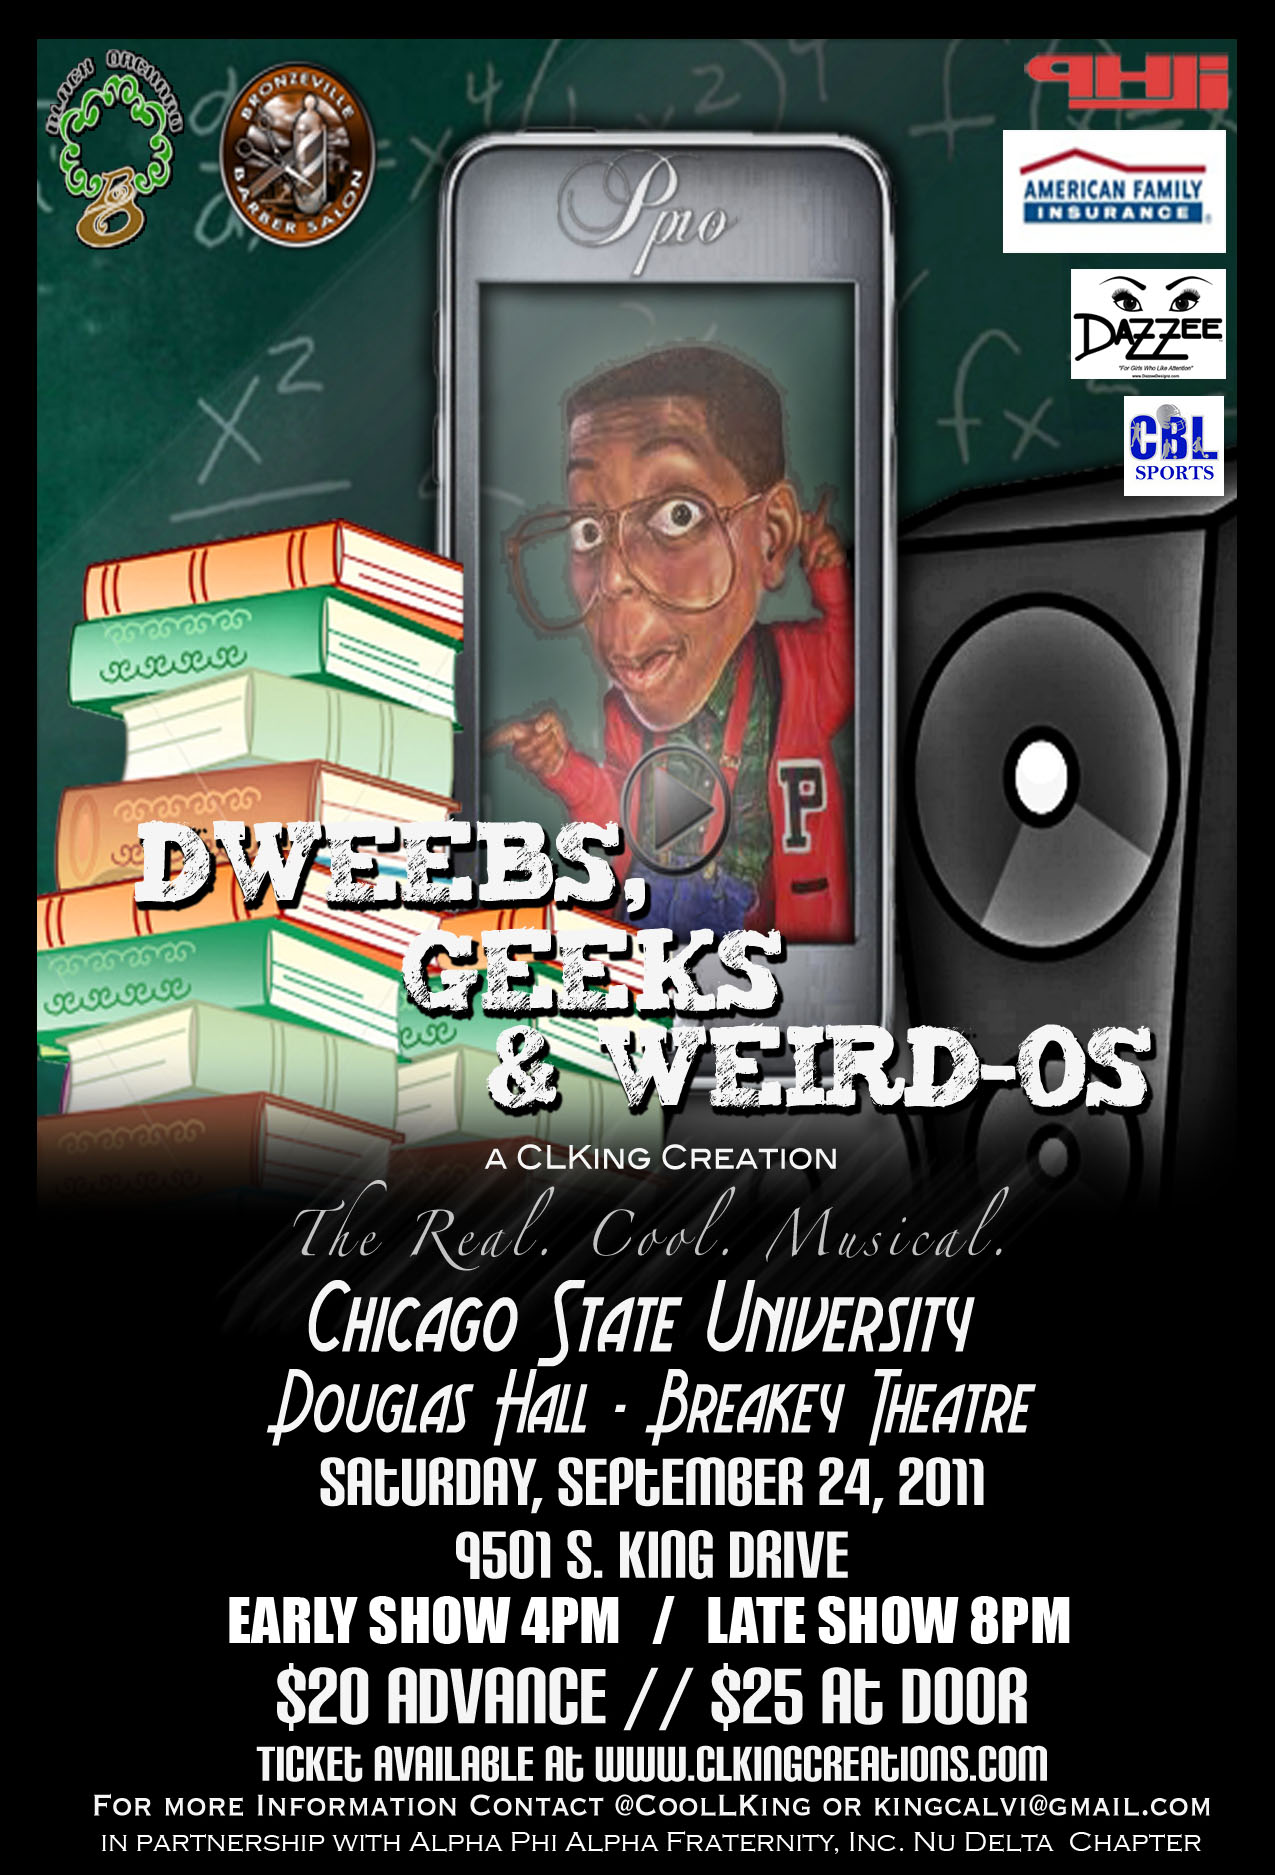 Dweebs, Geeks & Weird-Os (The Real. Cool. Musical.) ENCORE